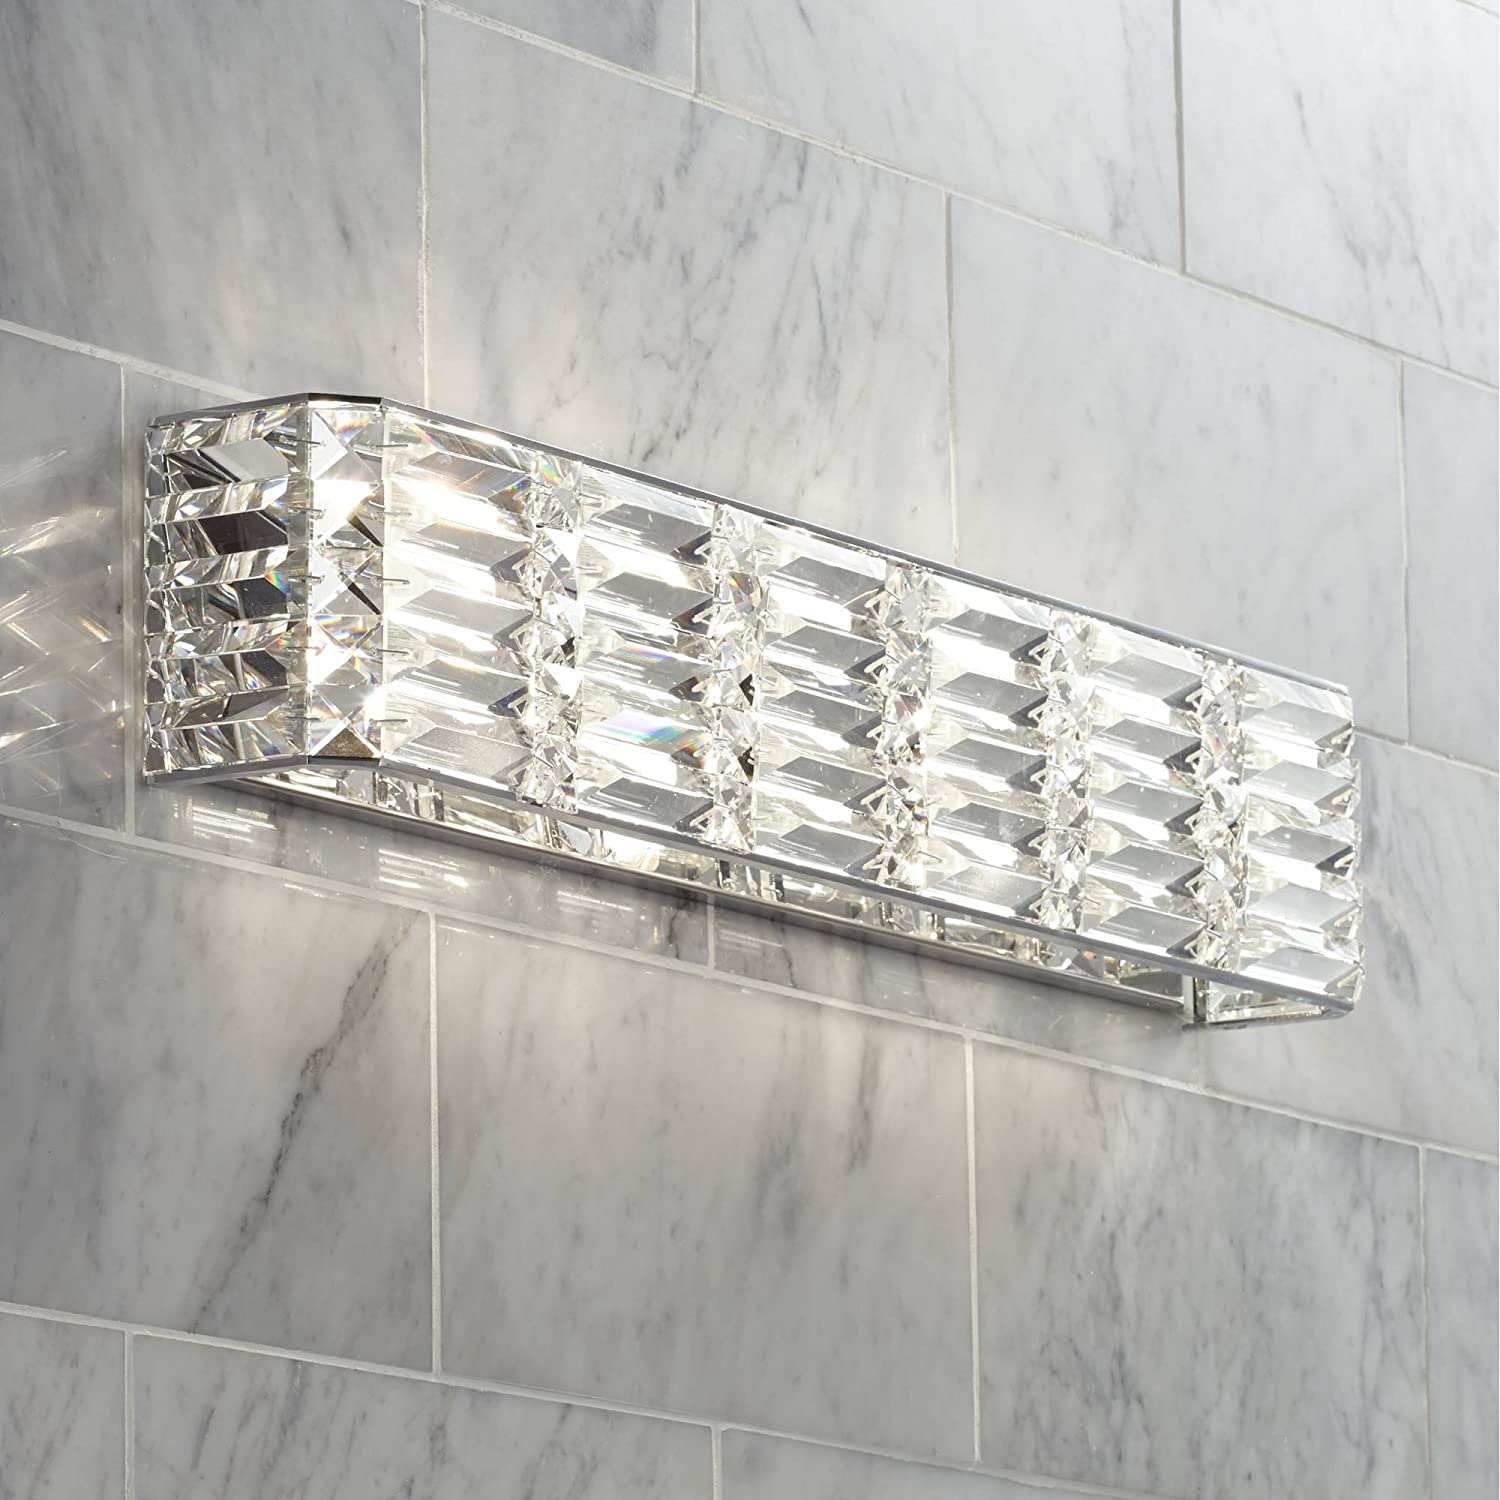 Vivienne Modern Wall Light Chrome Hardwired 24 1 2 Wide Light Bar Fixture Clear Crystal Accents for Bathroom Vanity – Possini Euro Design